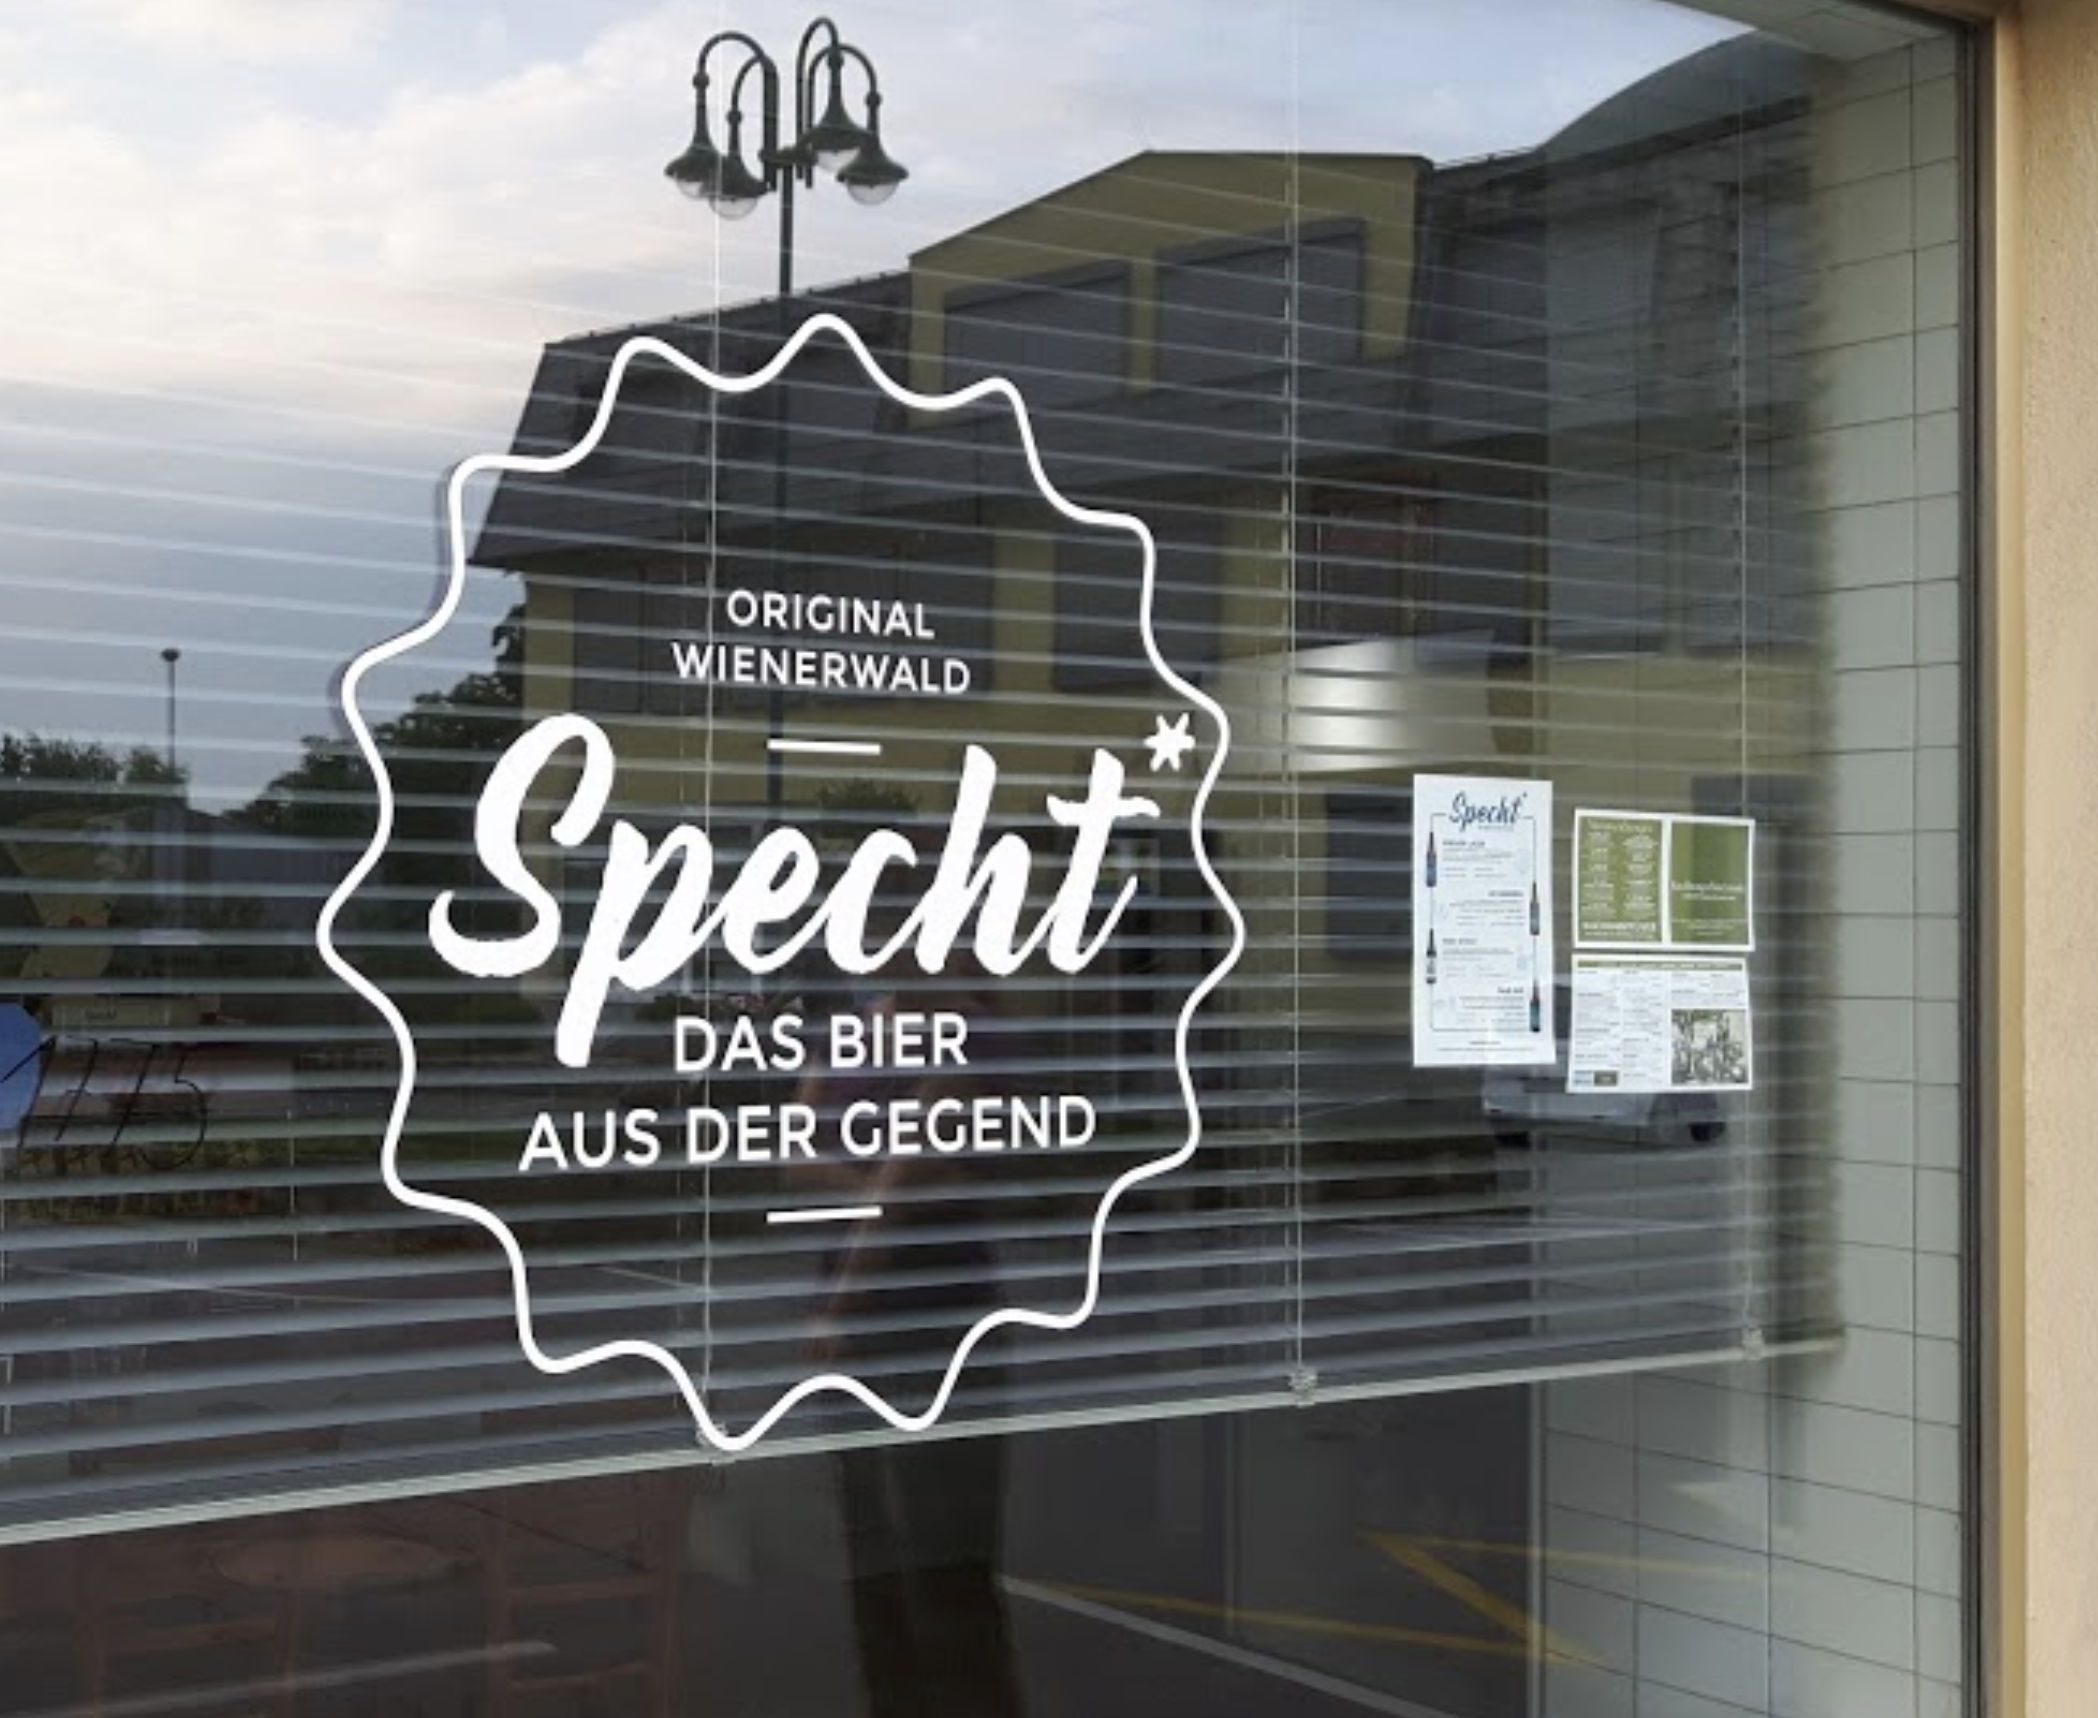 https://spechtbier.at/wp-content/uploads/2020/03/bier3.png